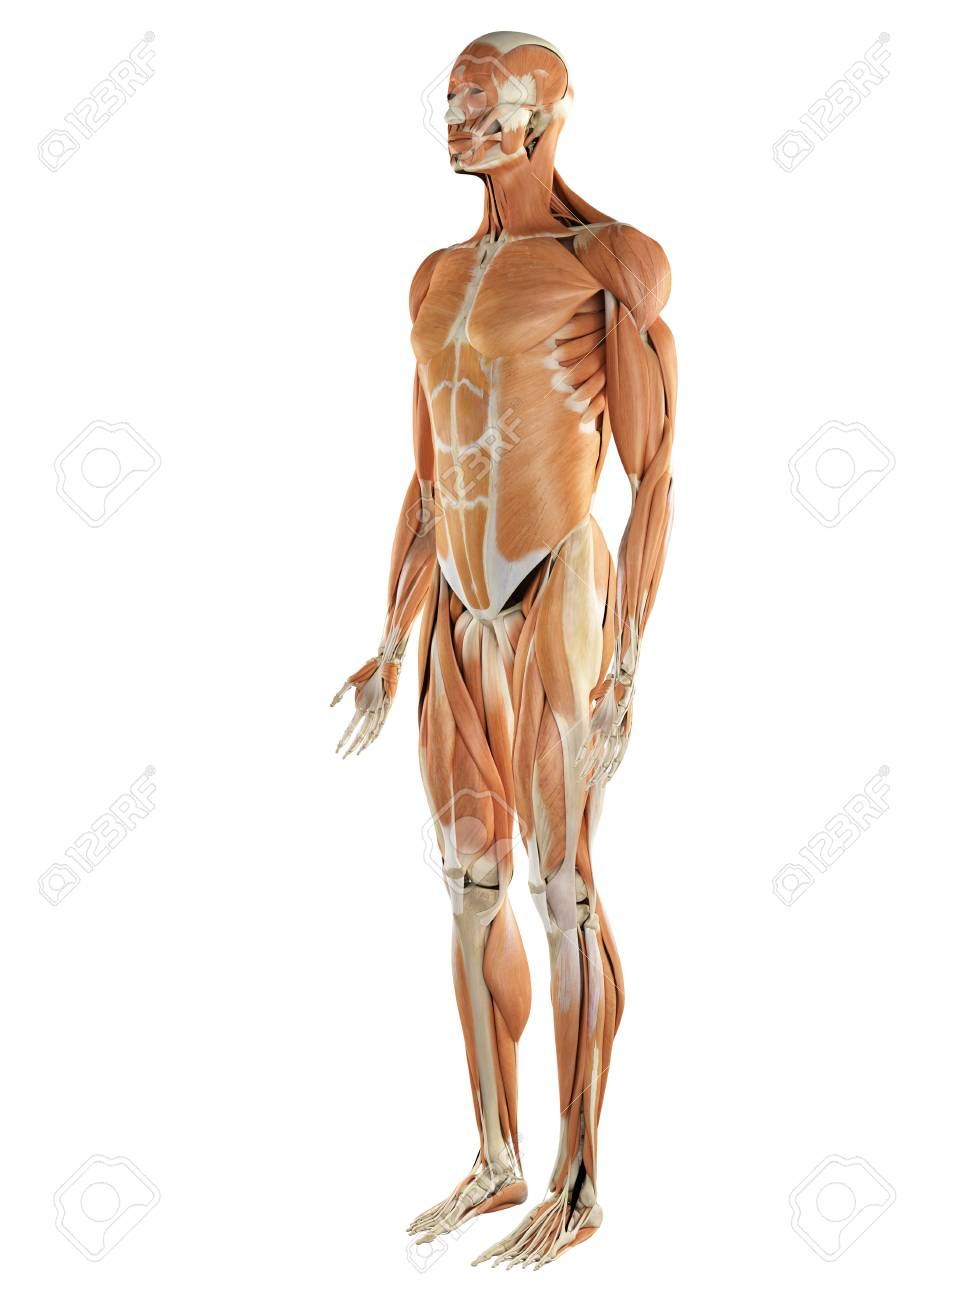 musculoskeletal system artwork stock photo 76205630